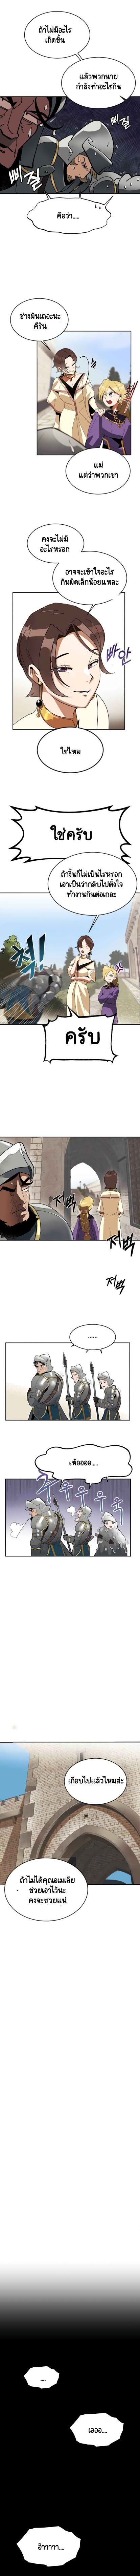 The Lazy Prince Becomes A Genius - หน้า 5